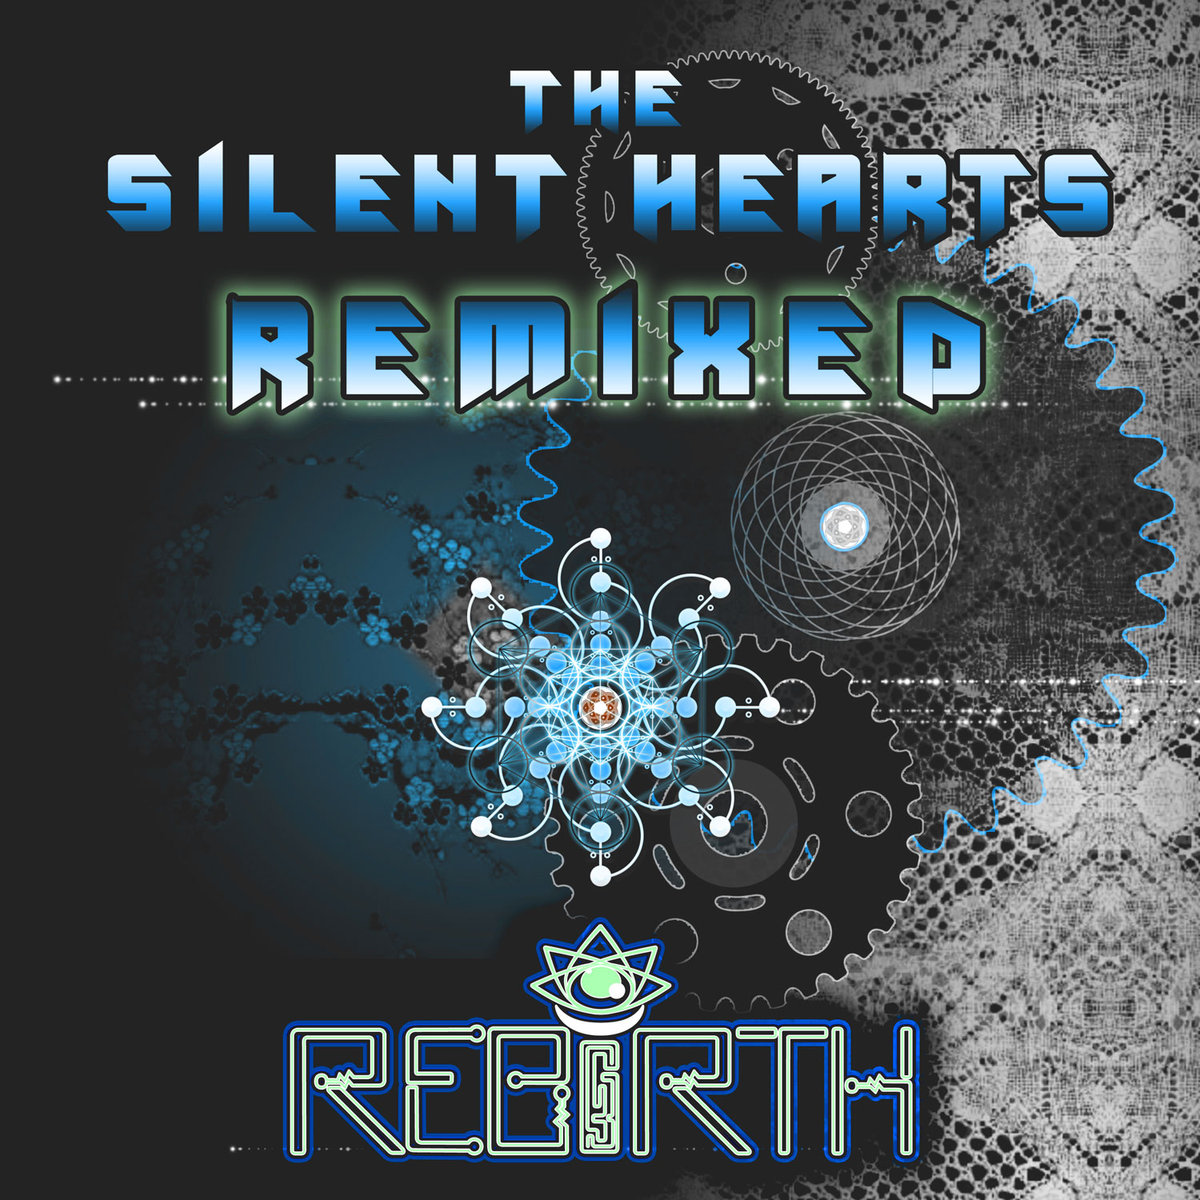 Rebirth - Huasca (Duffrey Remix) @ 'The Silent Hearts: Remixed' album (bass, electronic)